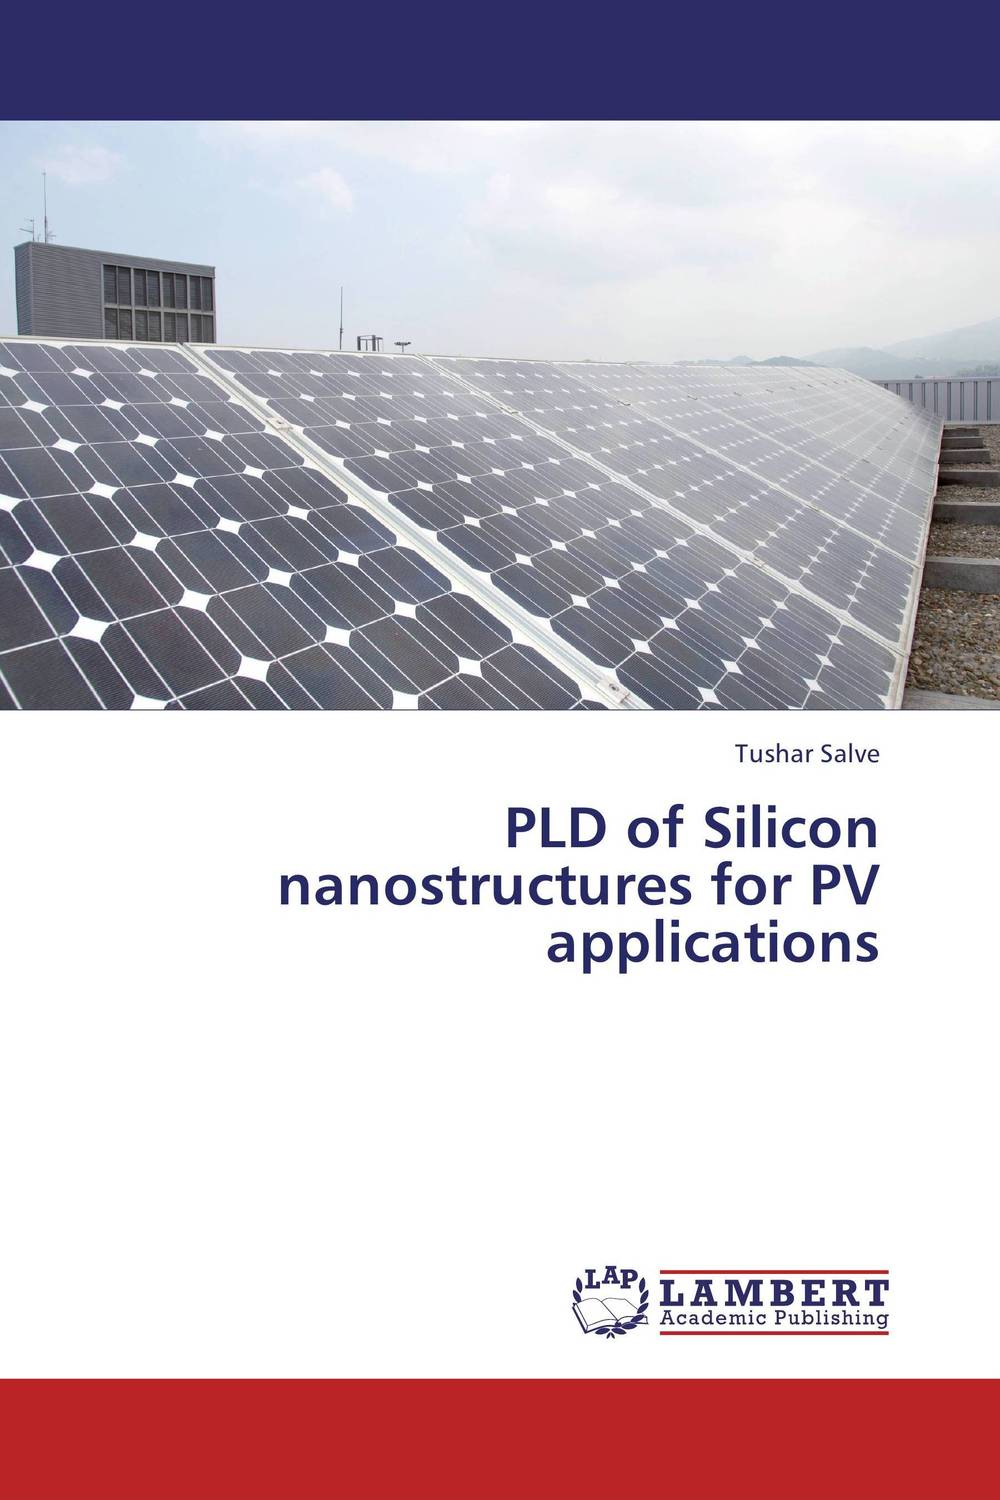 PLD of Silicon nanostructures for PV applications nanoscale memristive devices for memory and logic applications